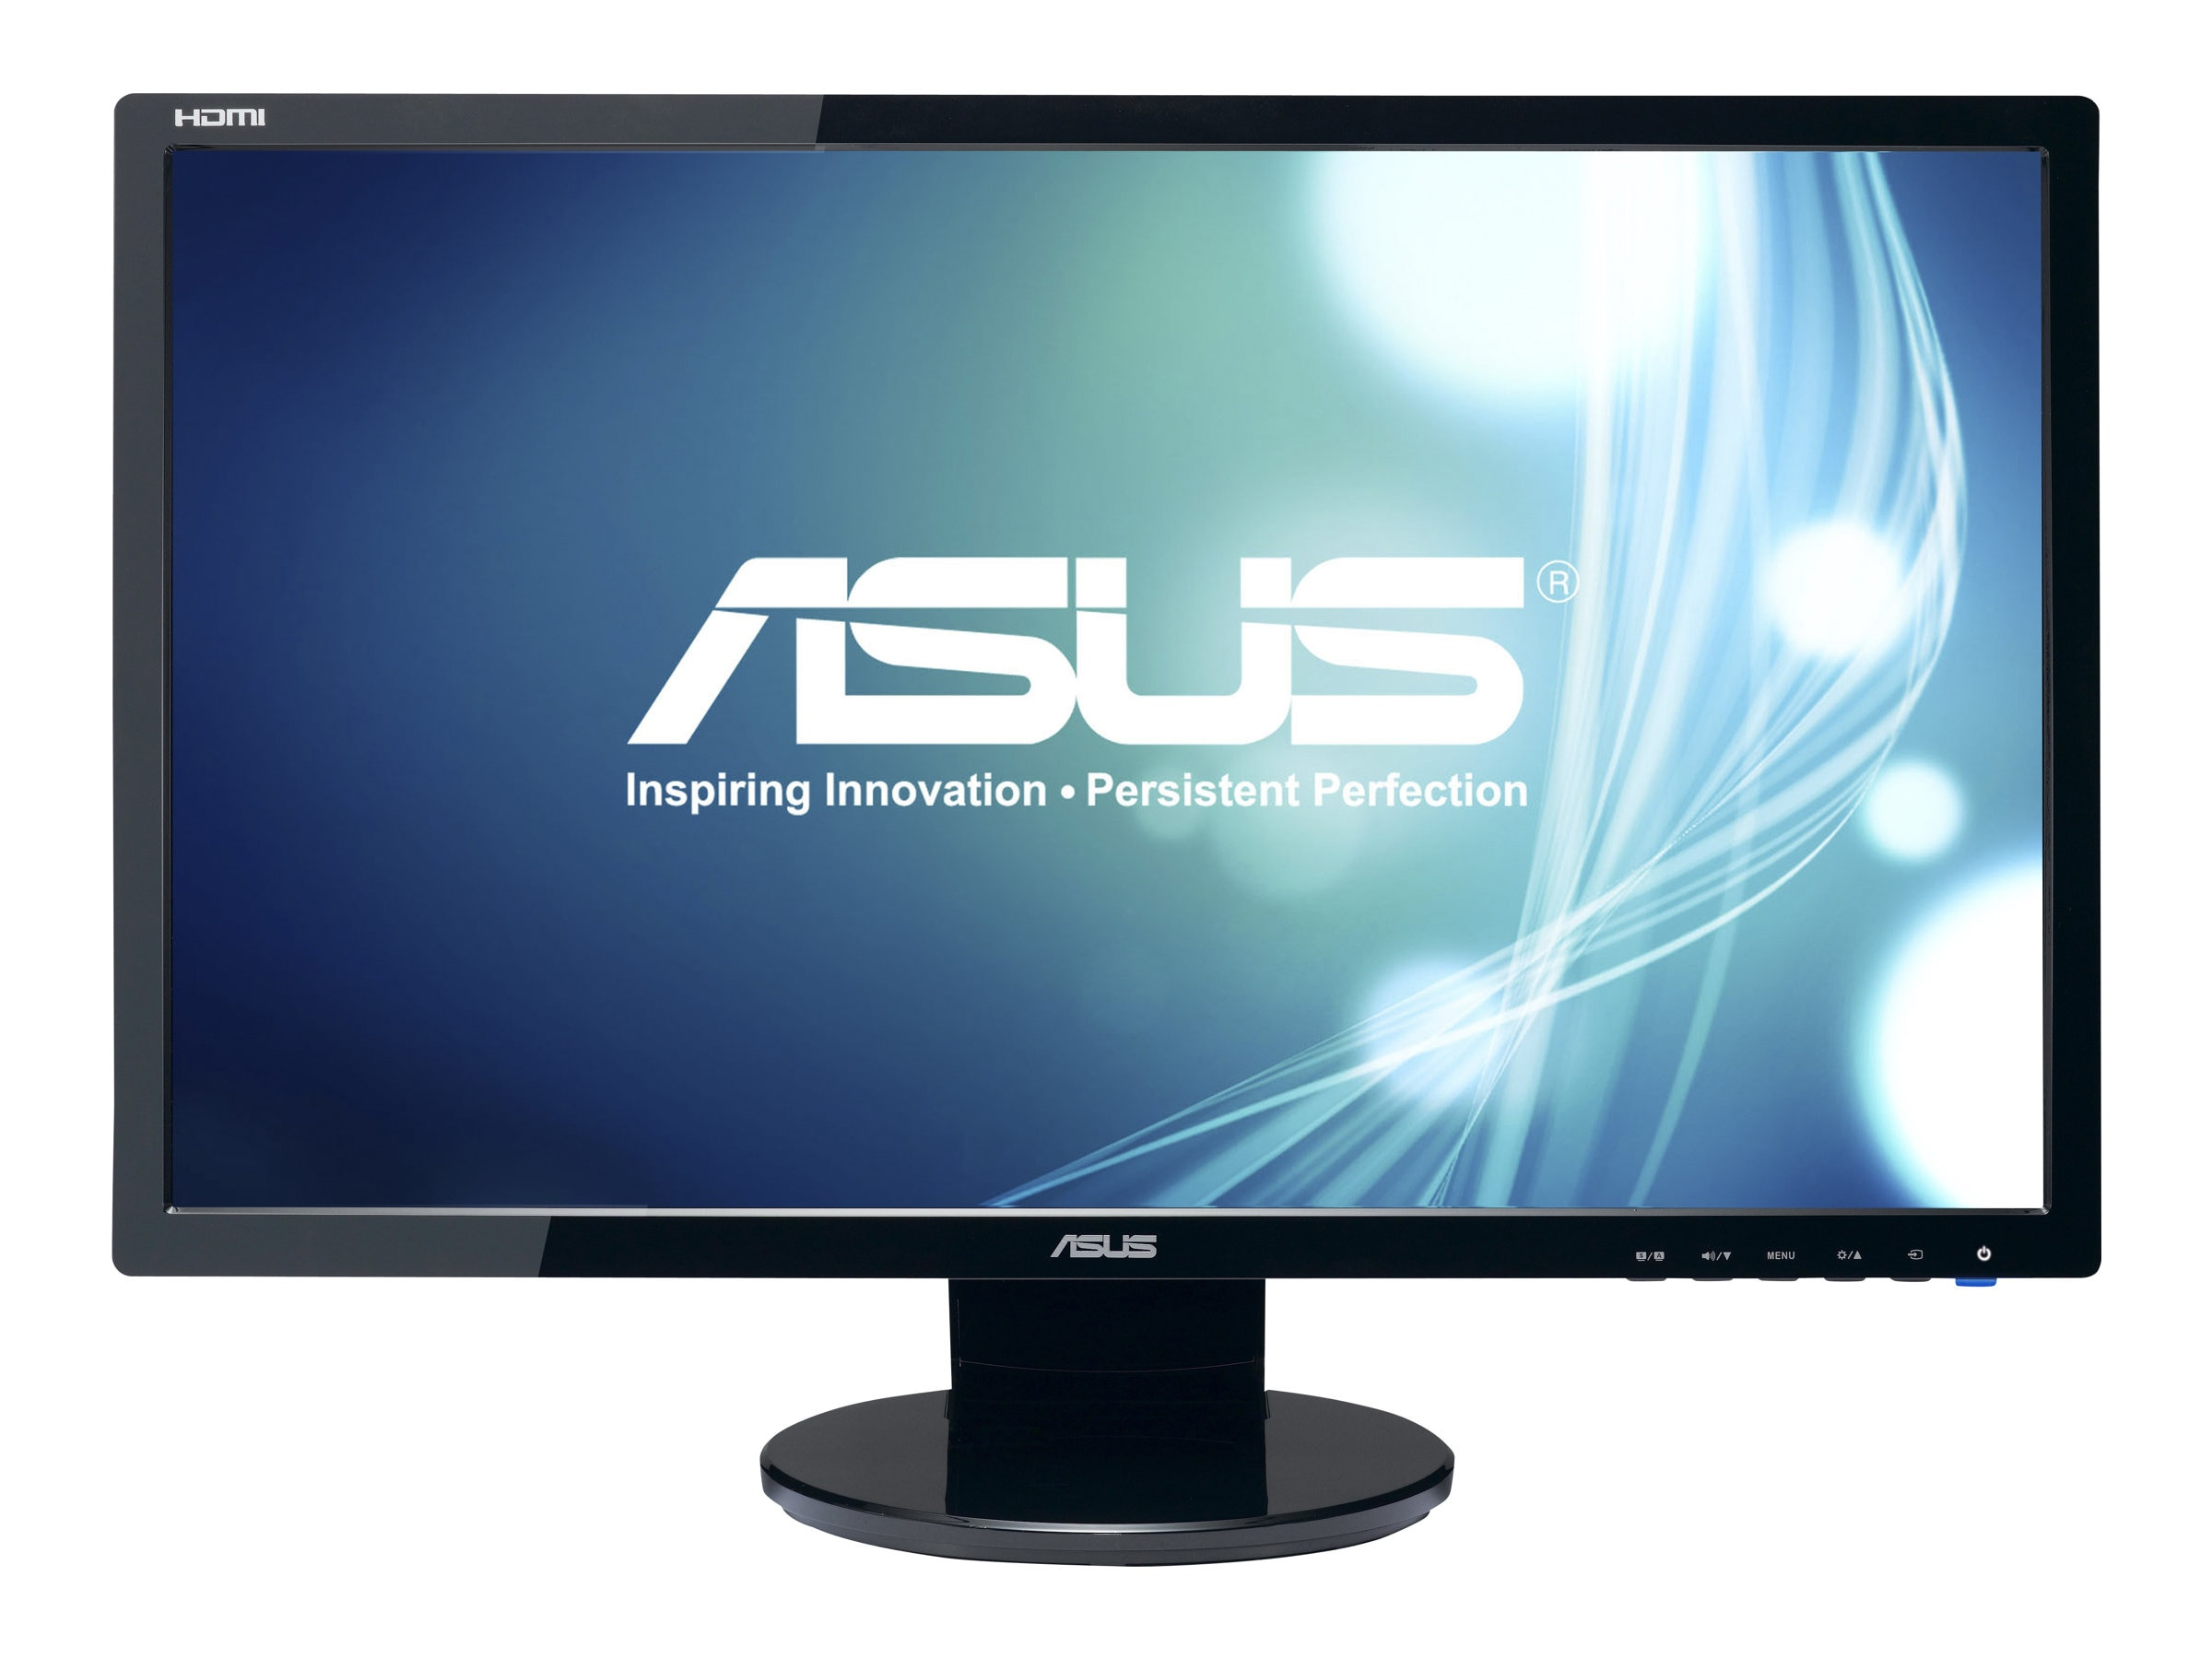 Asus 22 VE228H Full HD LED-LCD Monitor, Black, VE228H, 11932882, Monitors - LED-LCD